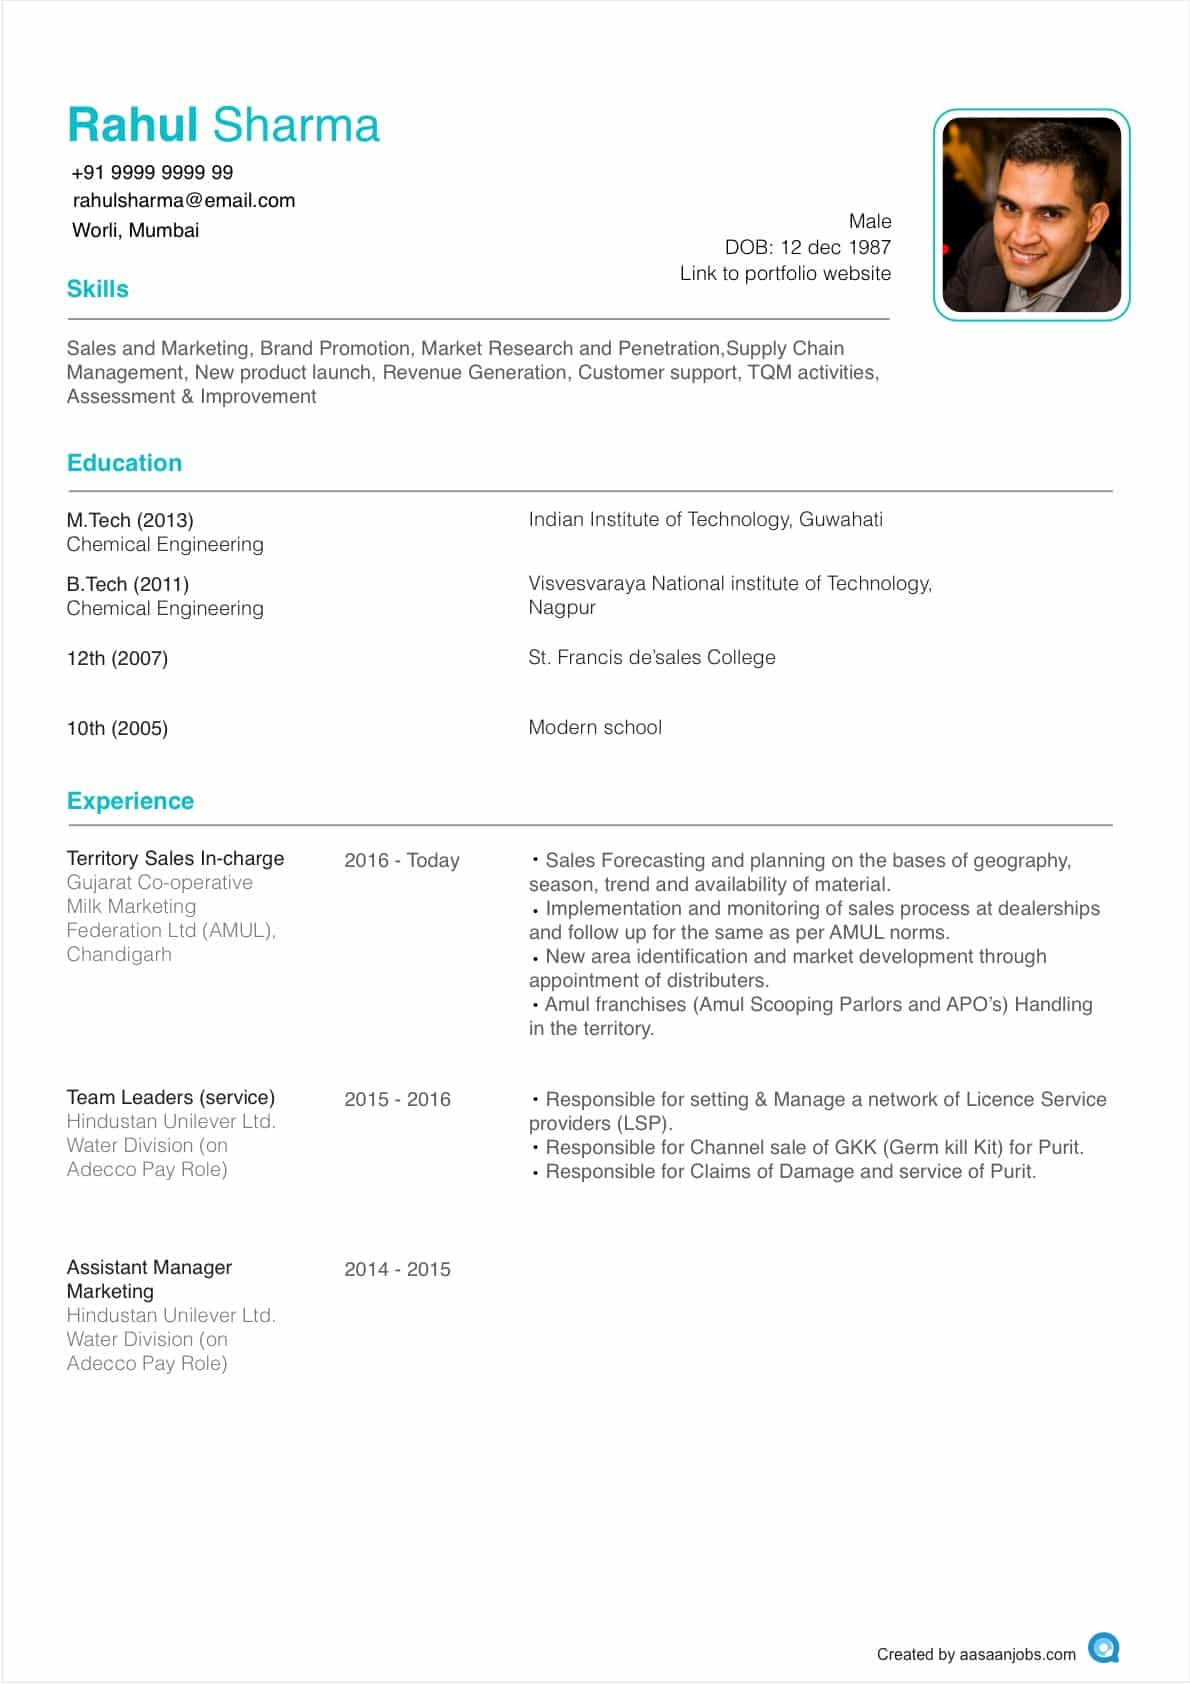 Examples Of Good Resume Profiles Resume Cover Letter Examples Get Free Sample Cover Letters How To Write The Best Resume Format Obfuscata